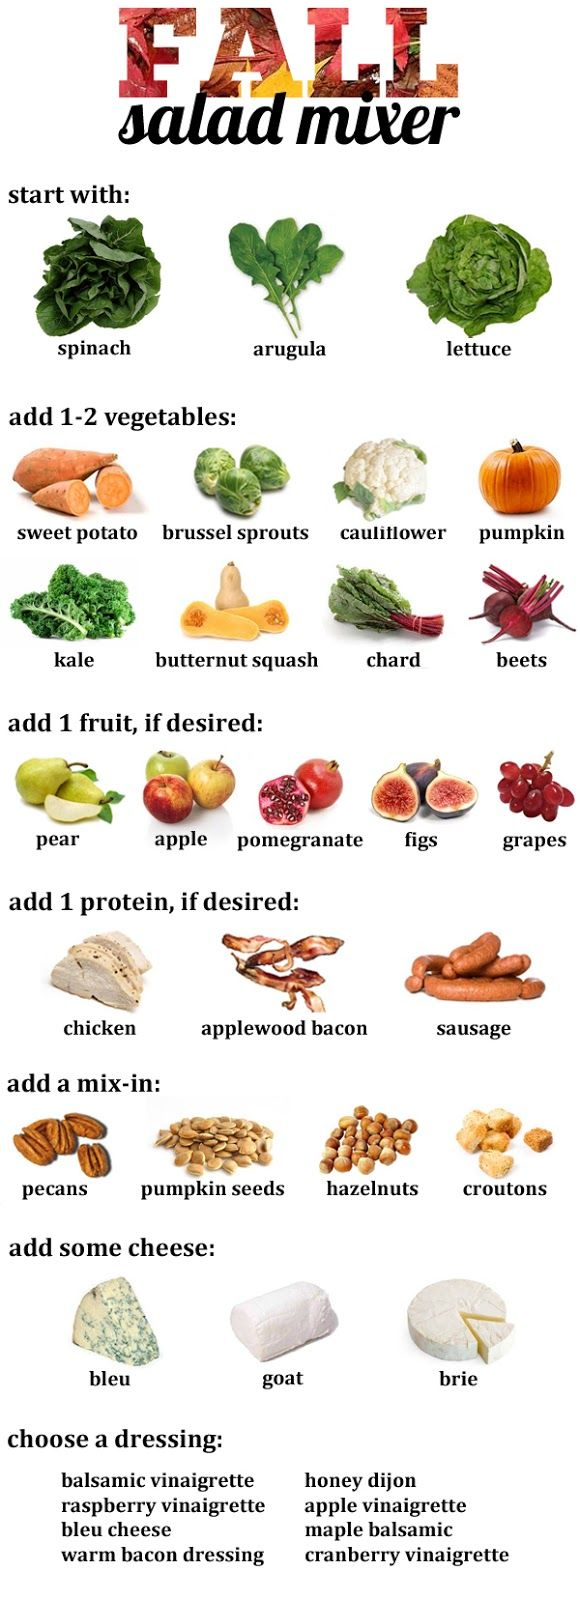 Fall Salad Guide: mix and match your own seasonal salad with ingredients like pumpkin, sweet potato, pears, figs, butternut squash, pumpkin seeds, and more!